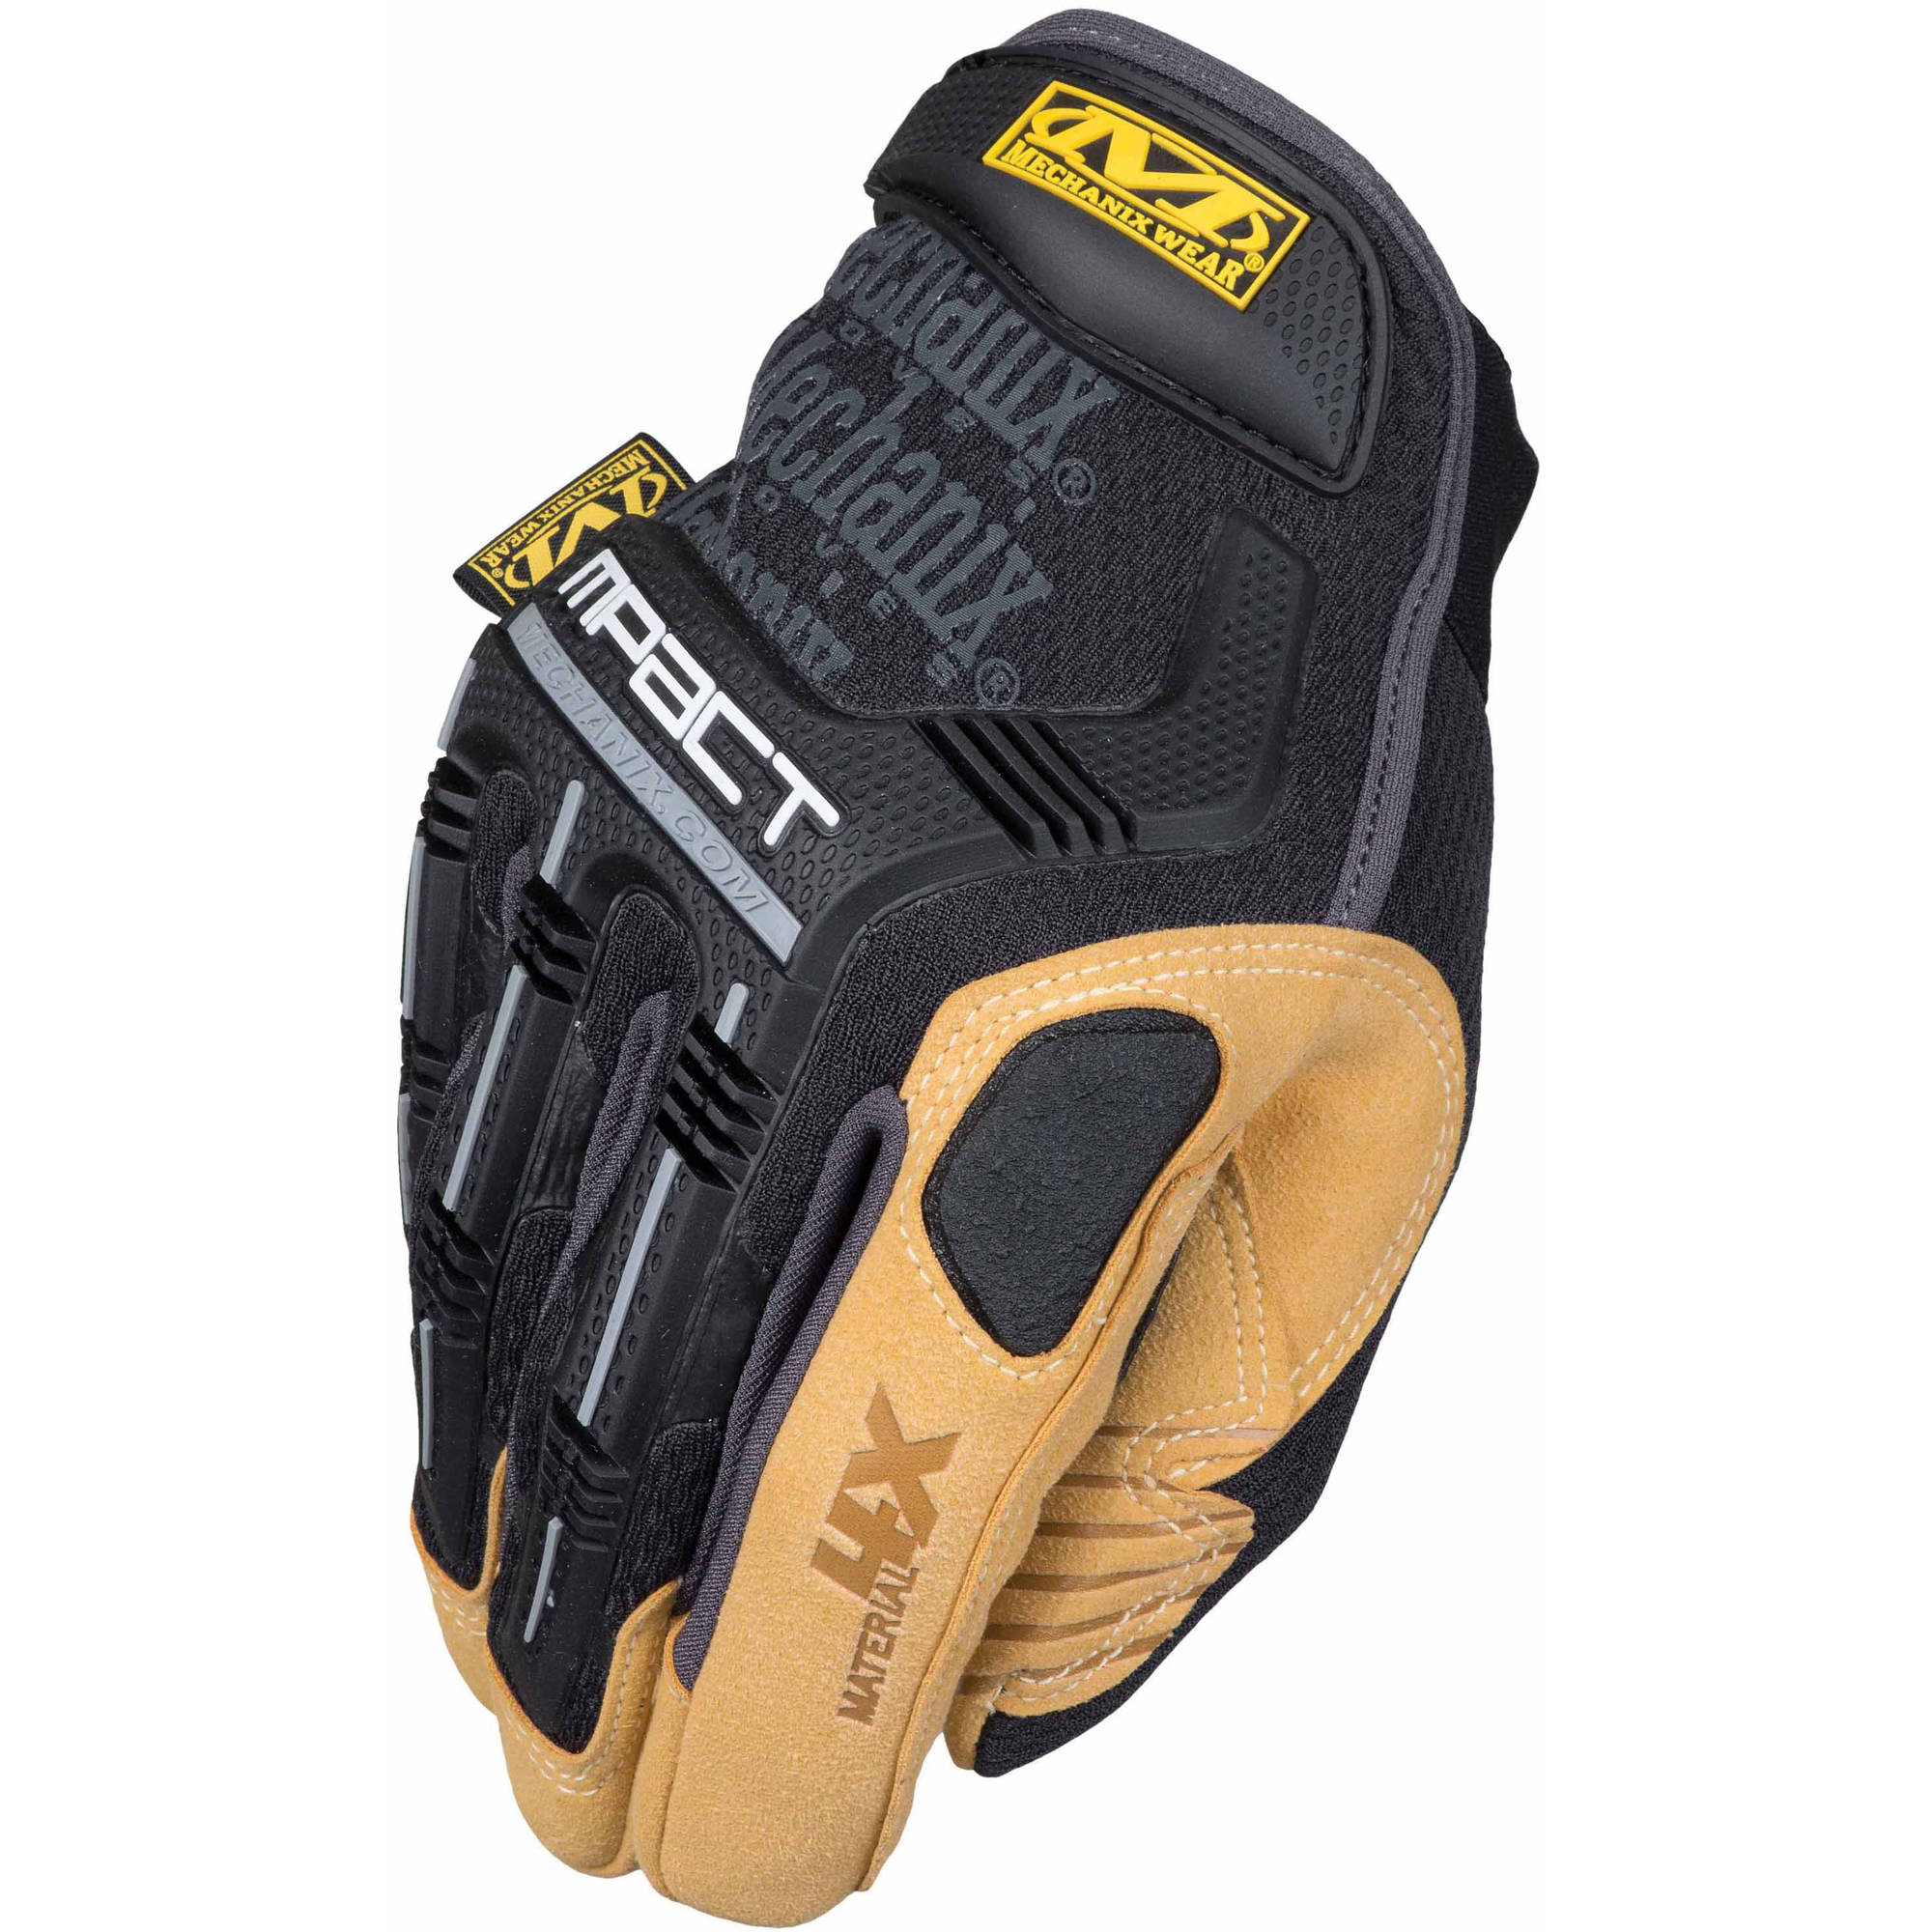 Mechanix Wear Material 4X Mpact Glove, Tan, Small